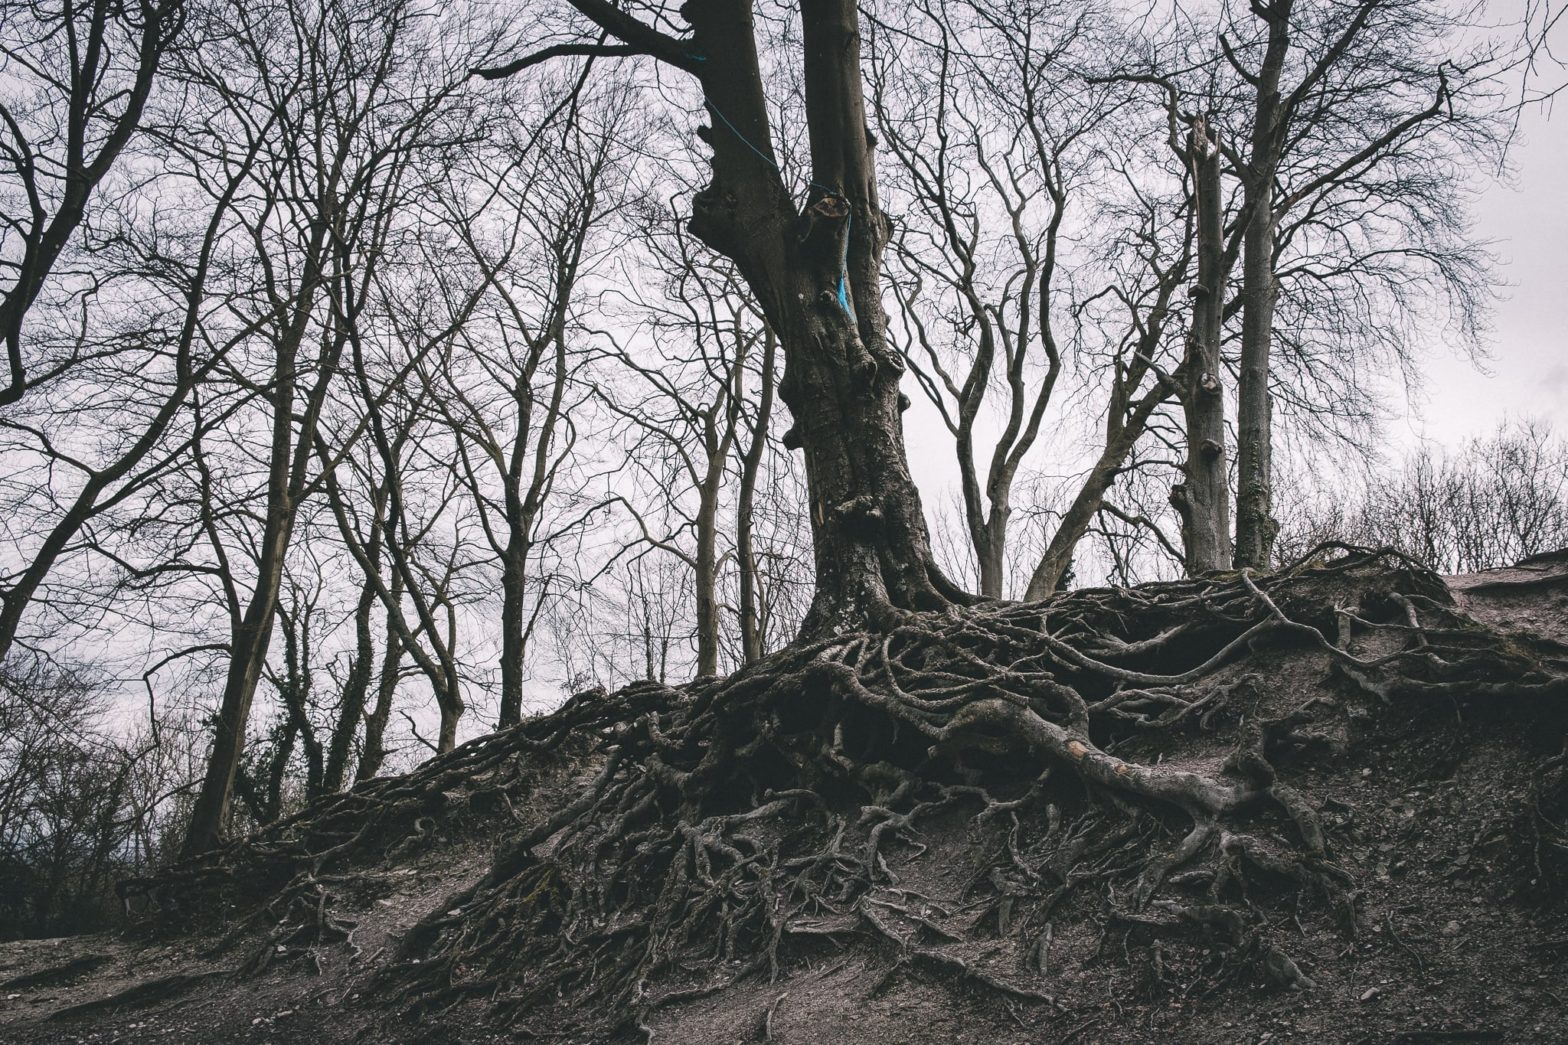 An old tree growing over the edge of a small hill with formidable root structure exposed